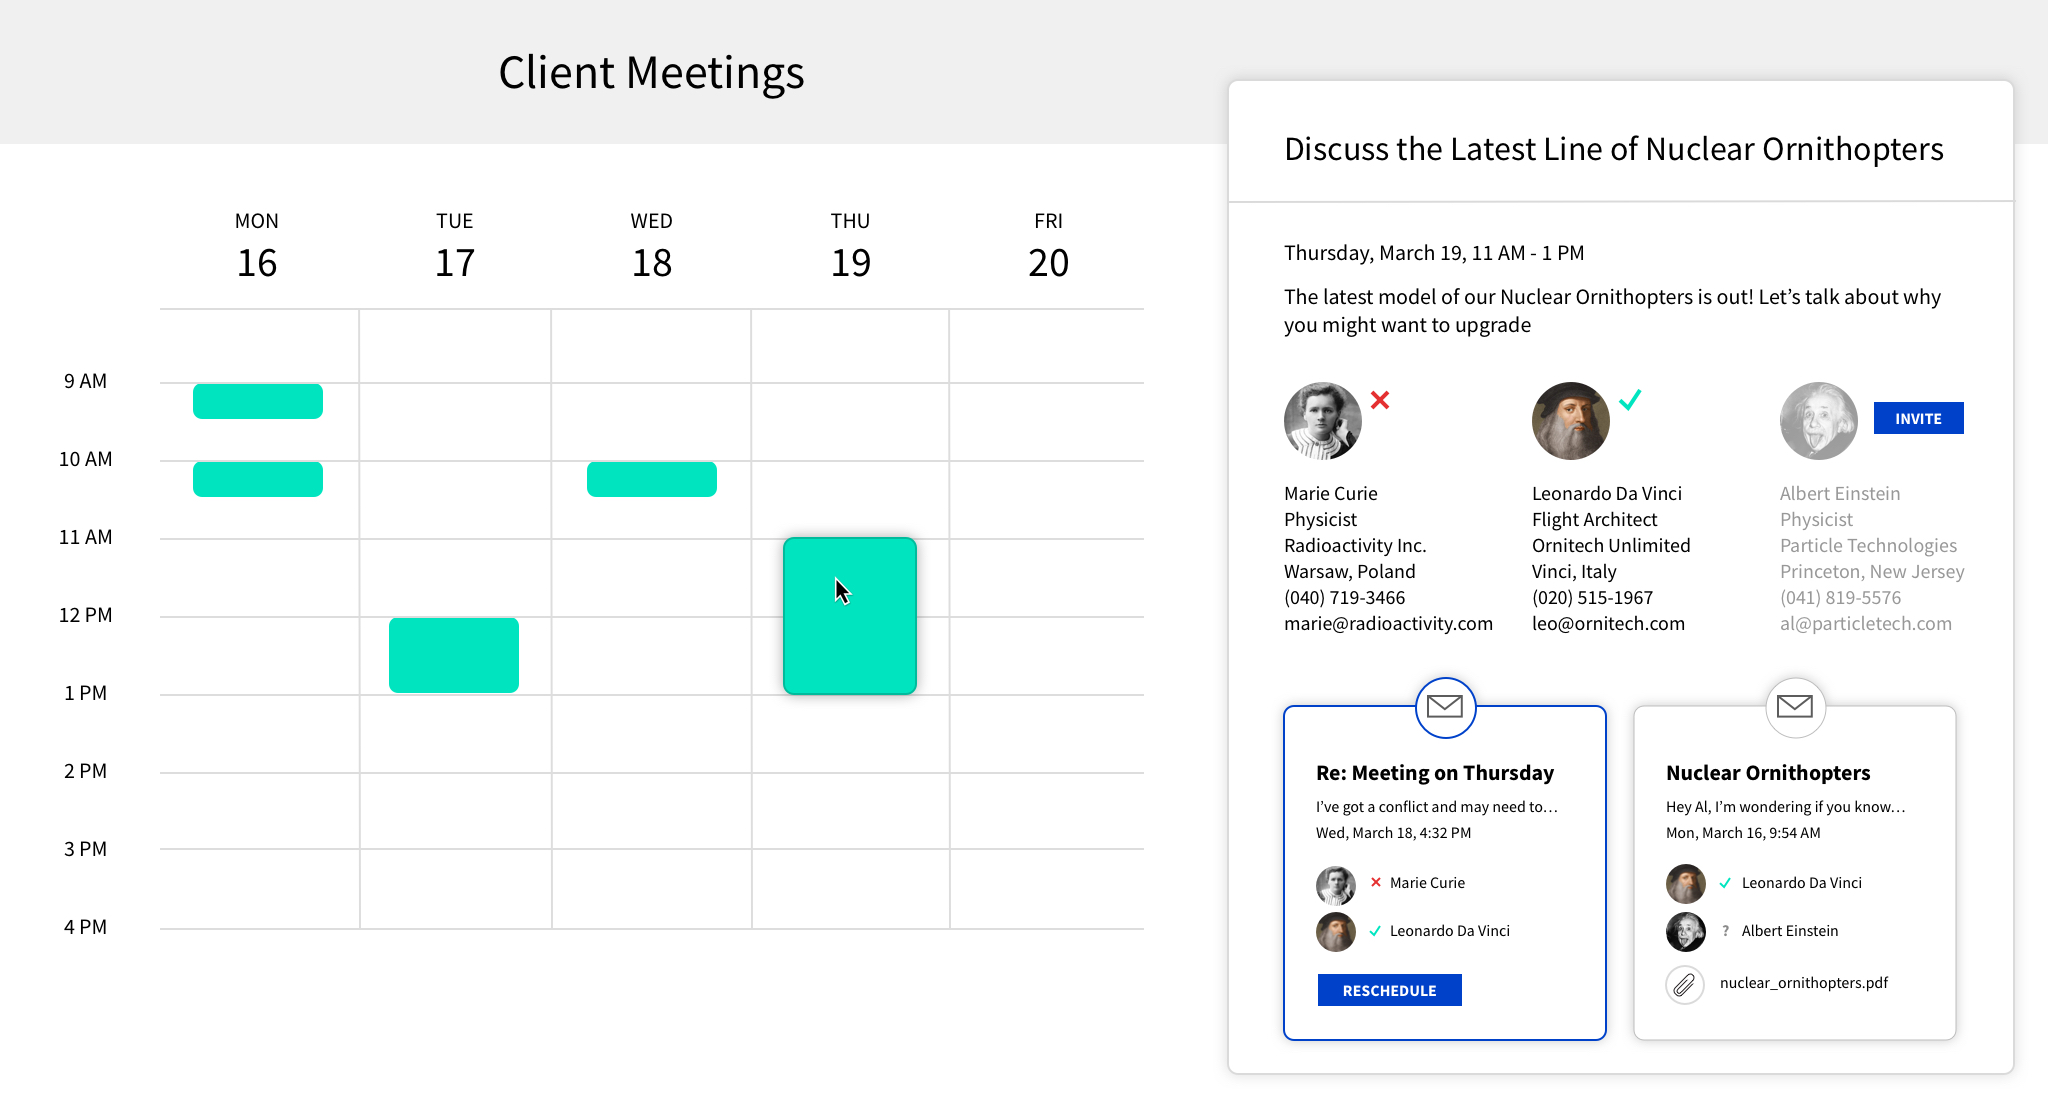 Build user interfaces that let your users better manage their schedule